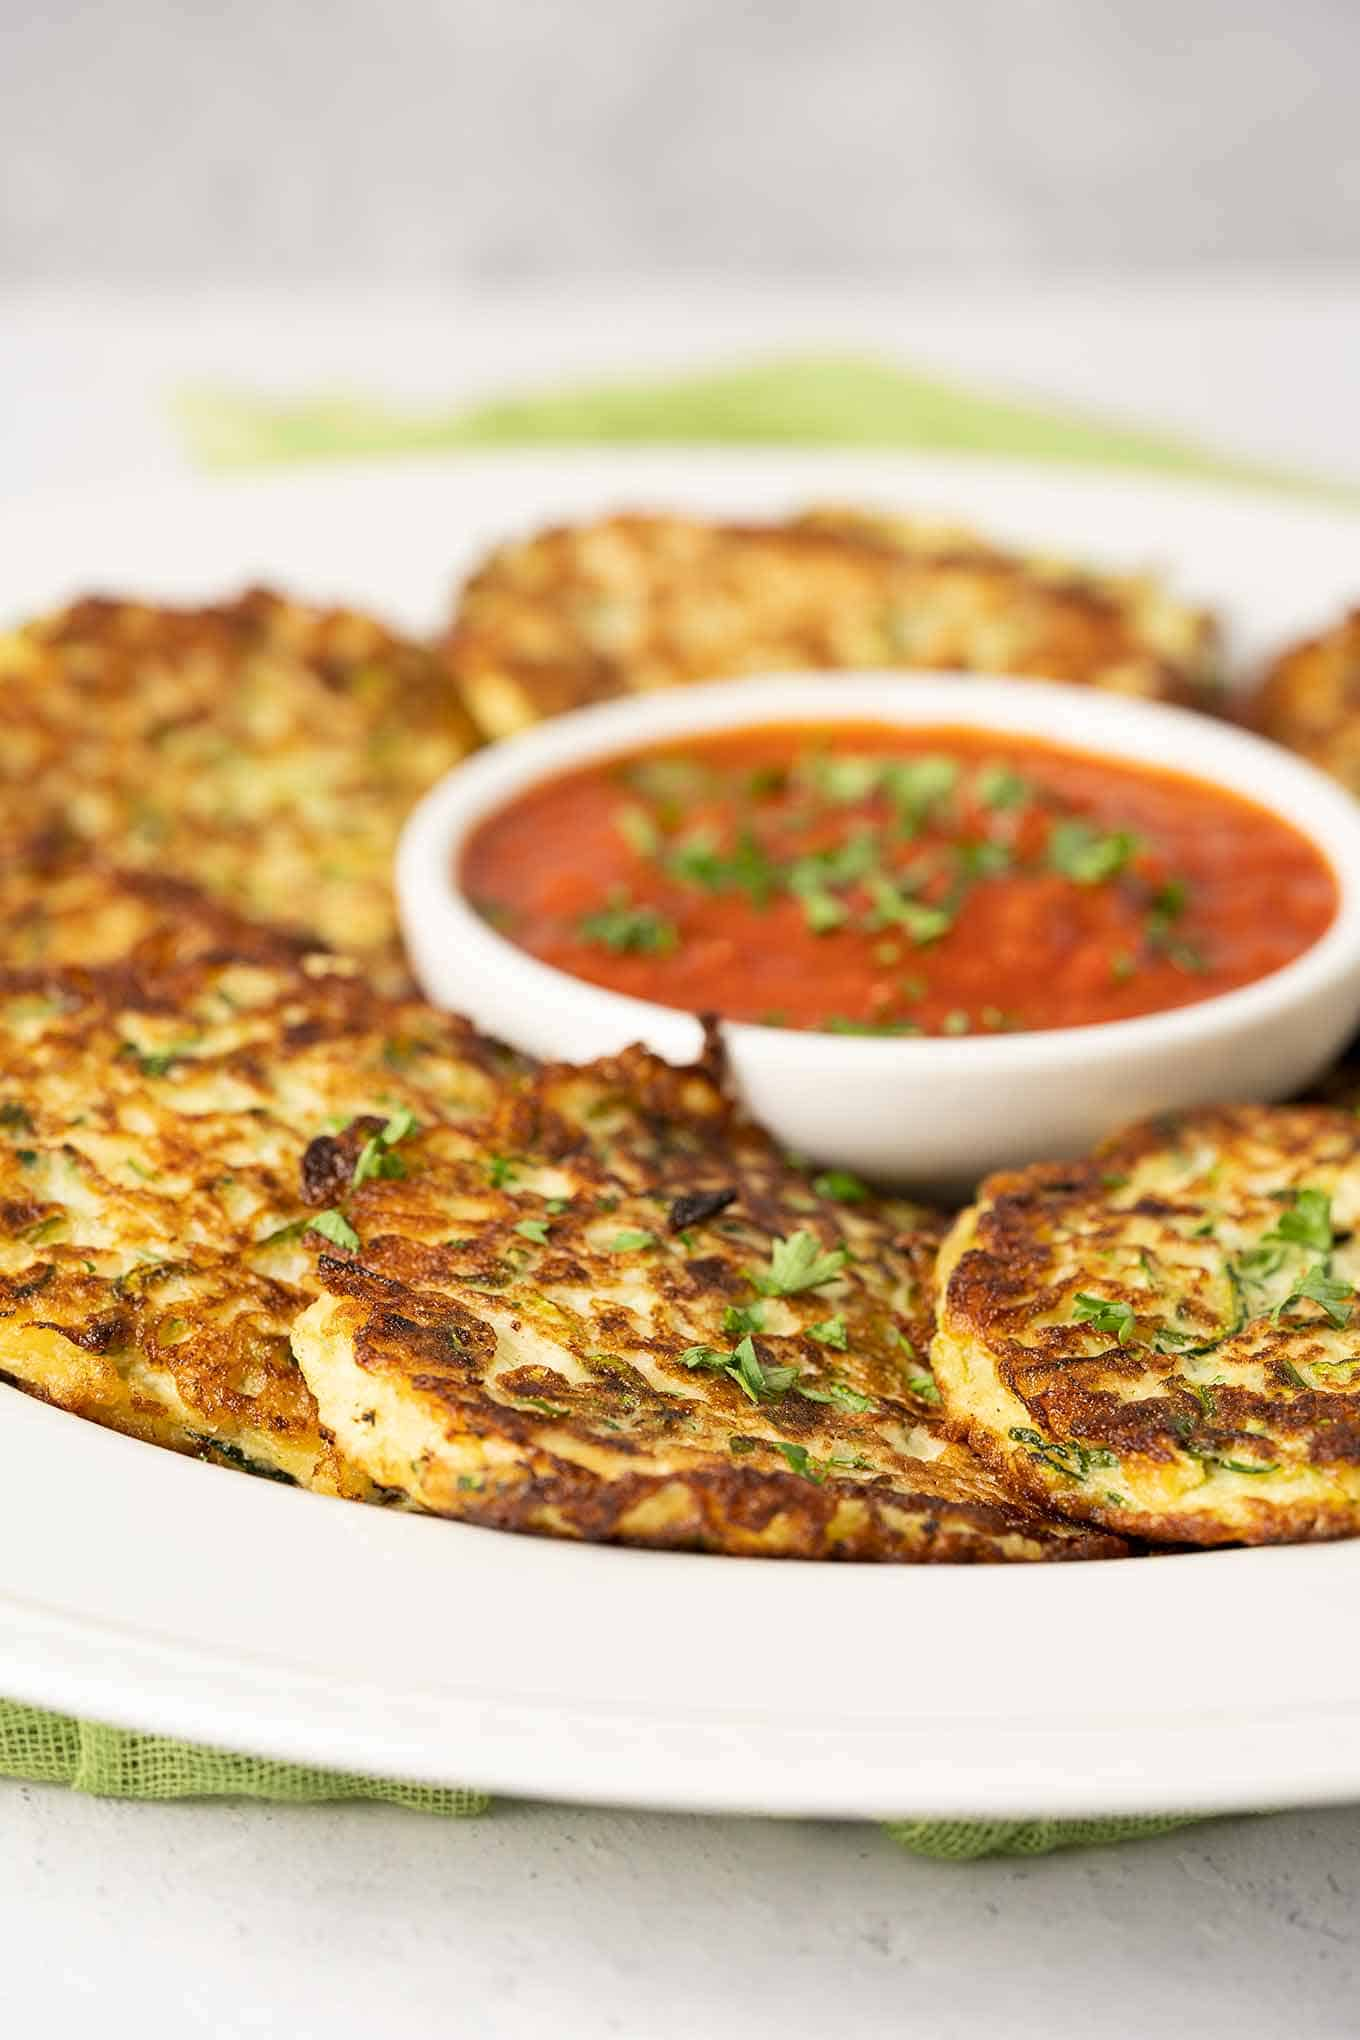 Serving platter of zucchini fritters garnished with chopped parsley.